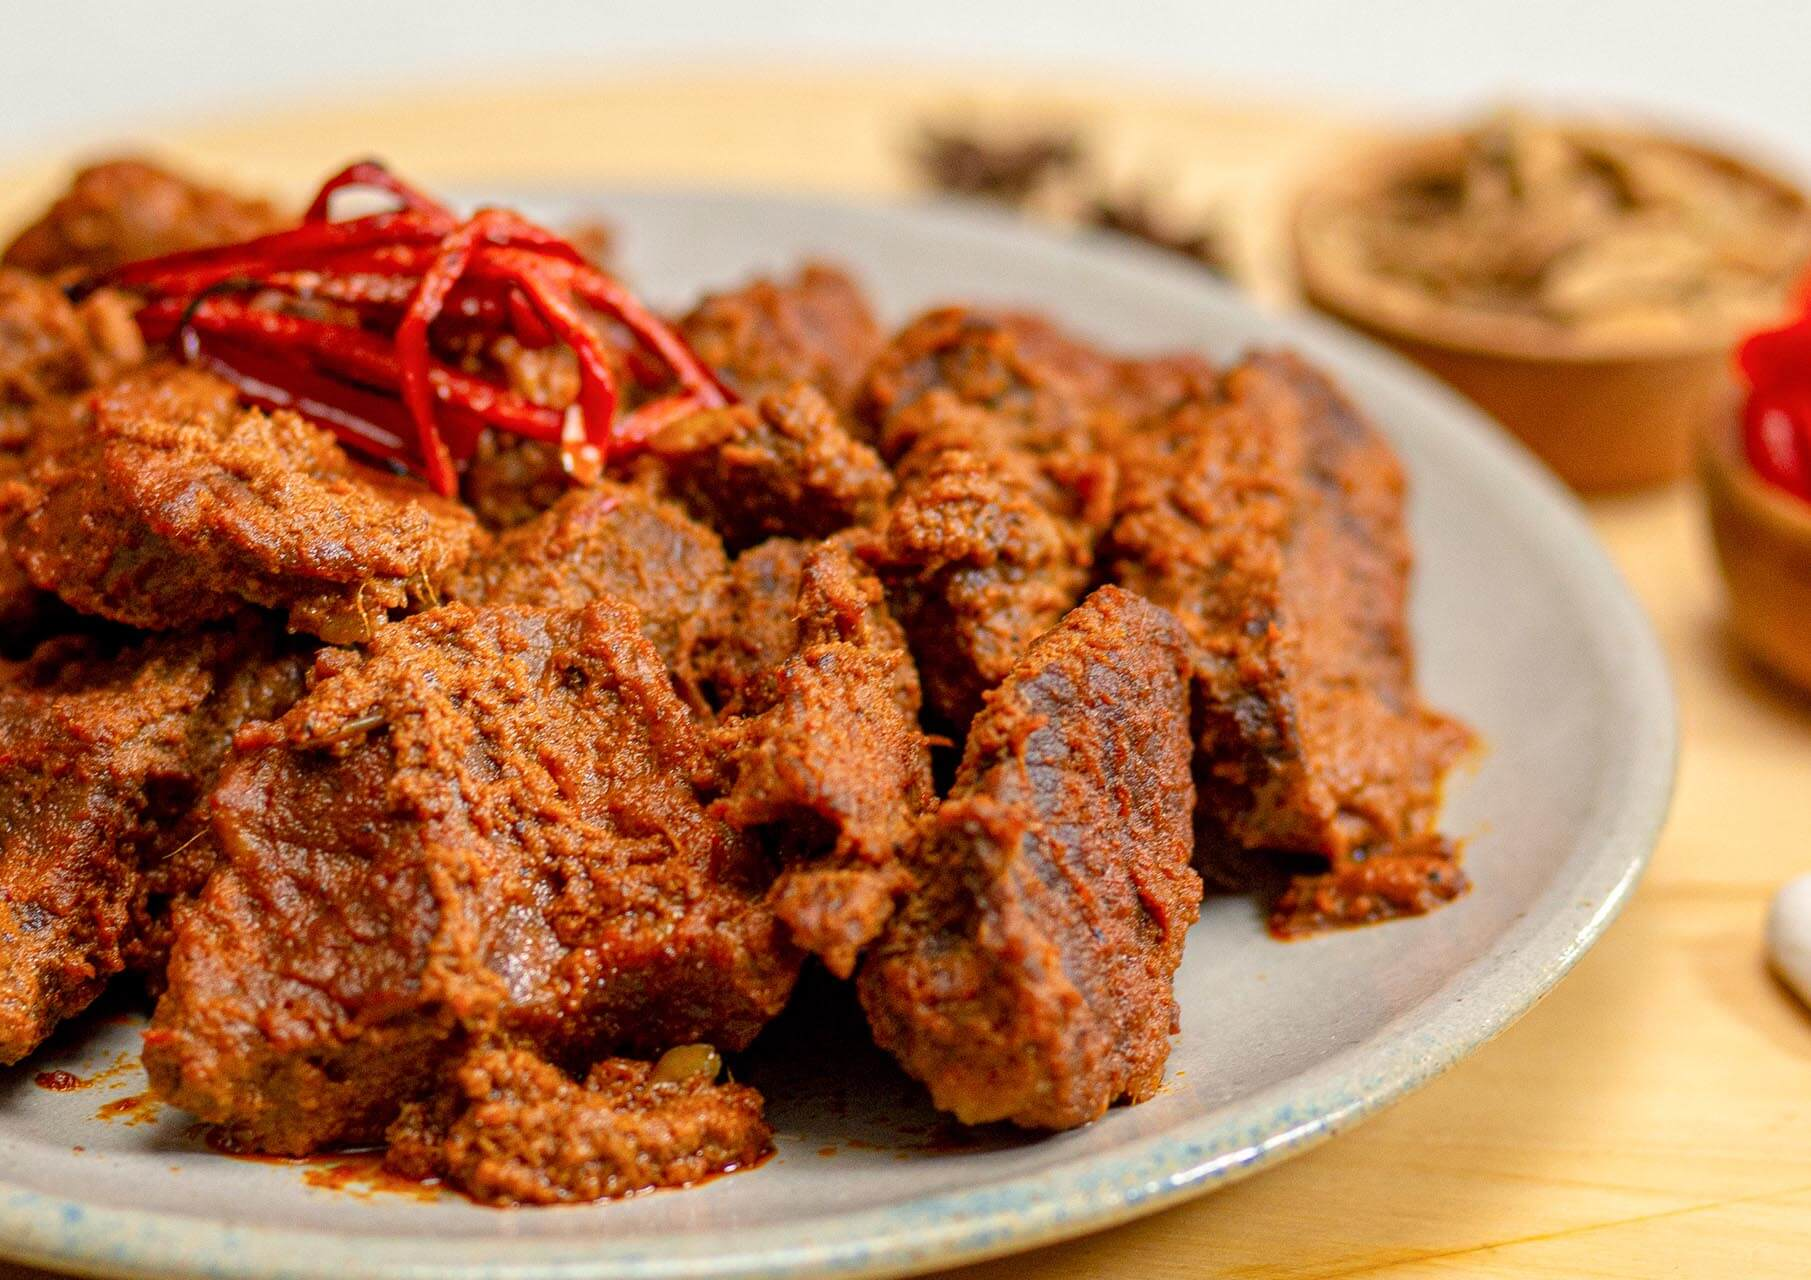 10 Great Ramadan Dishes To Cook For Iftar